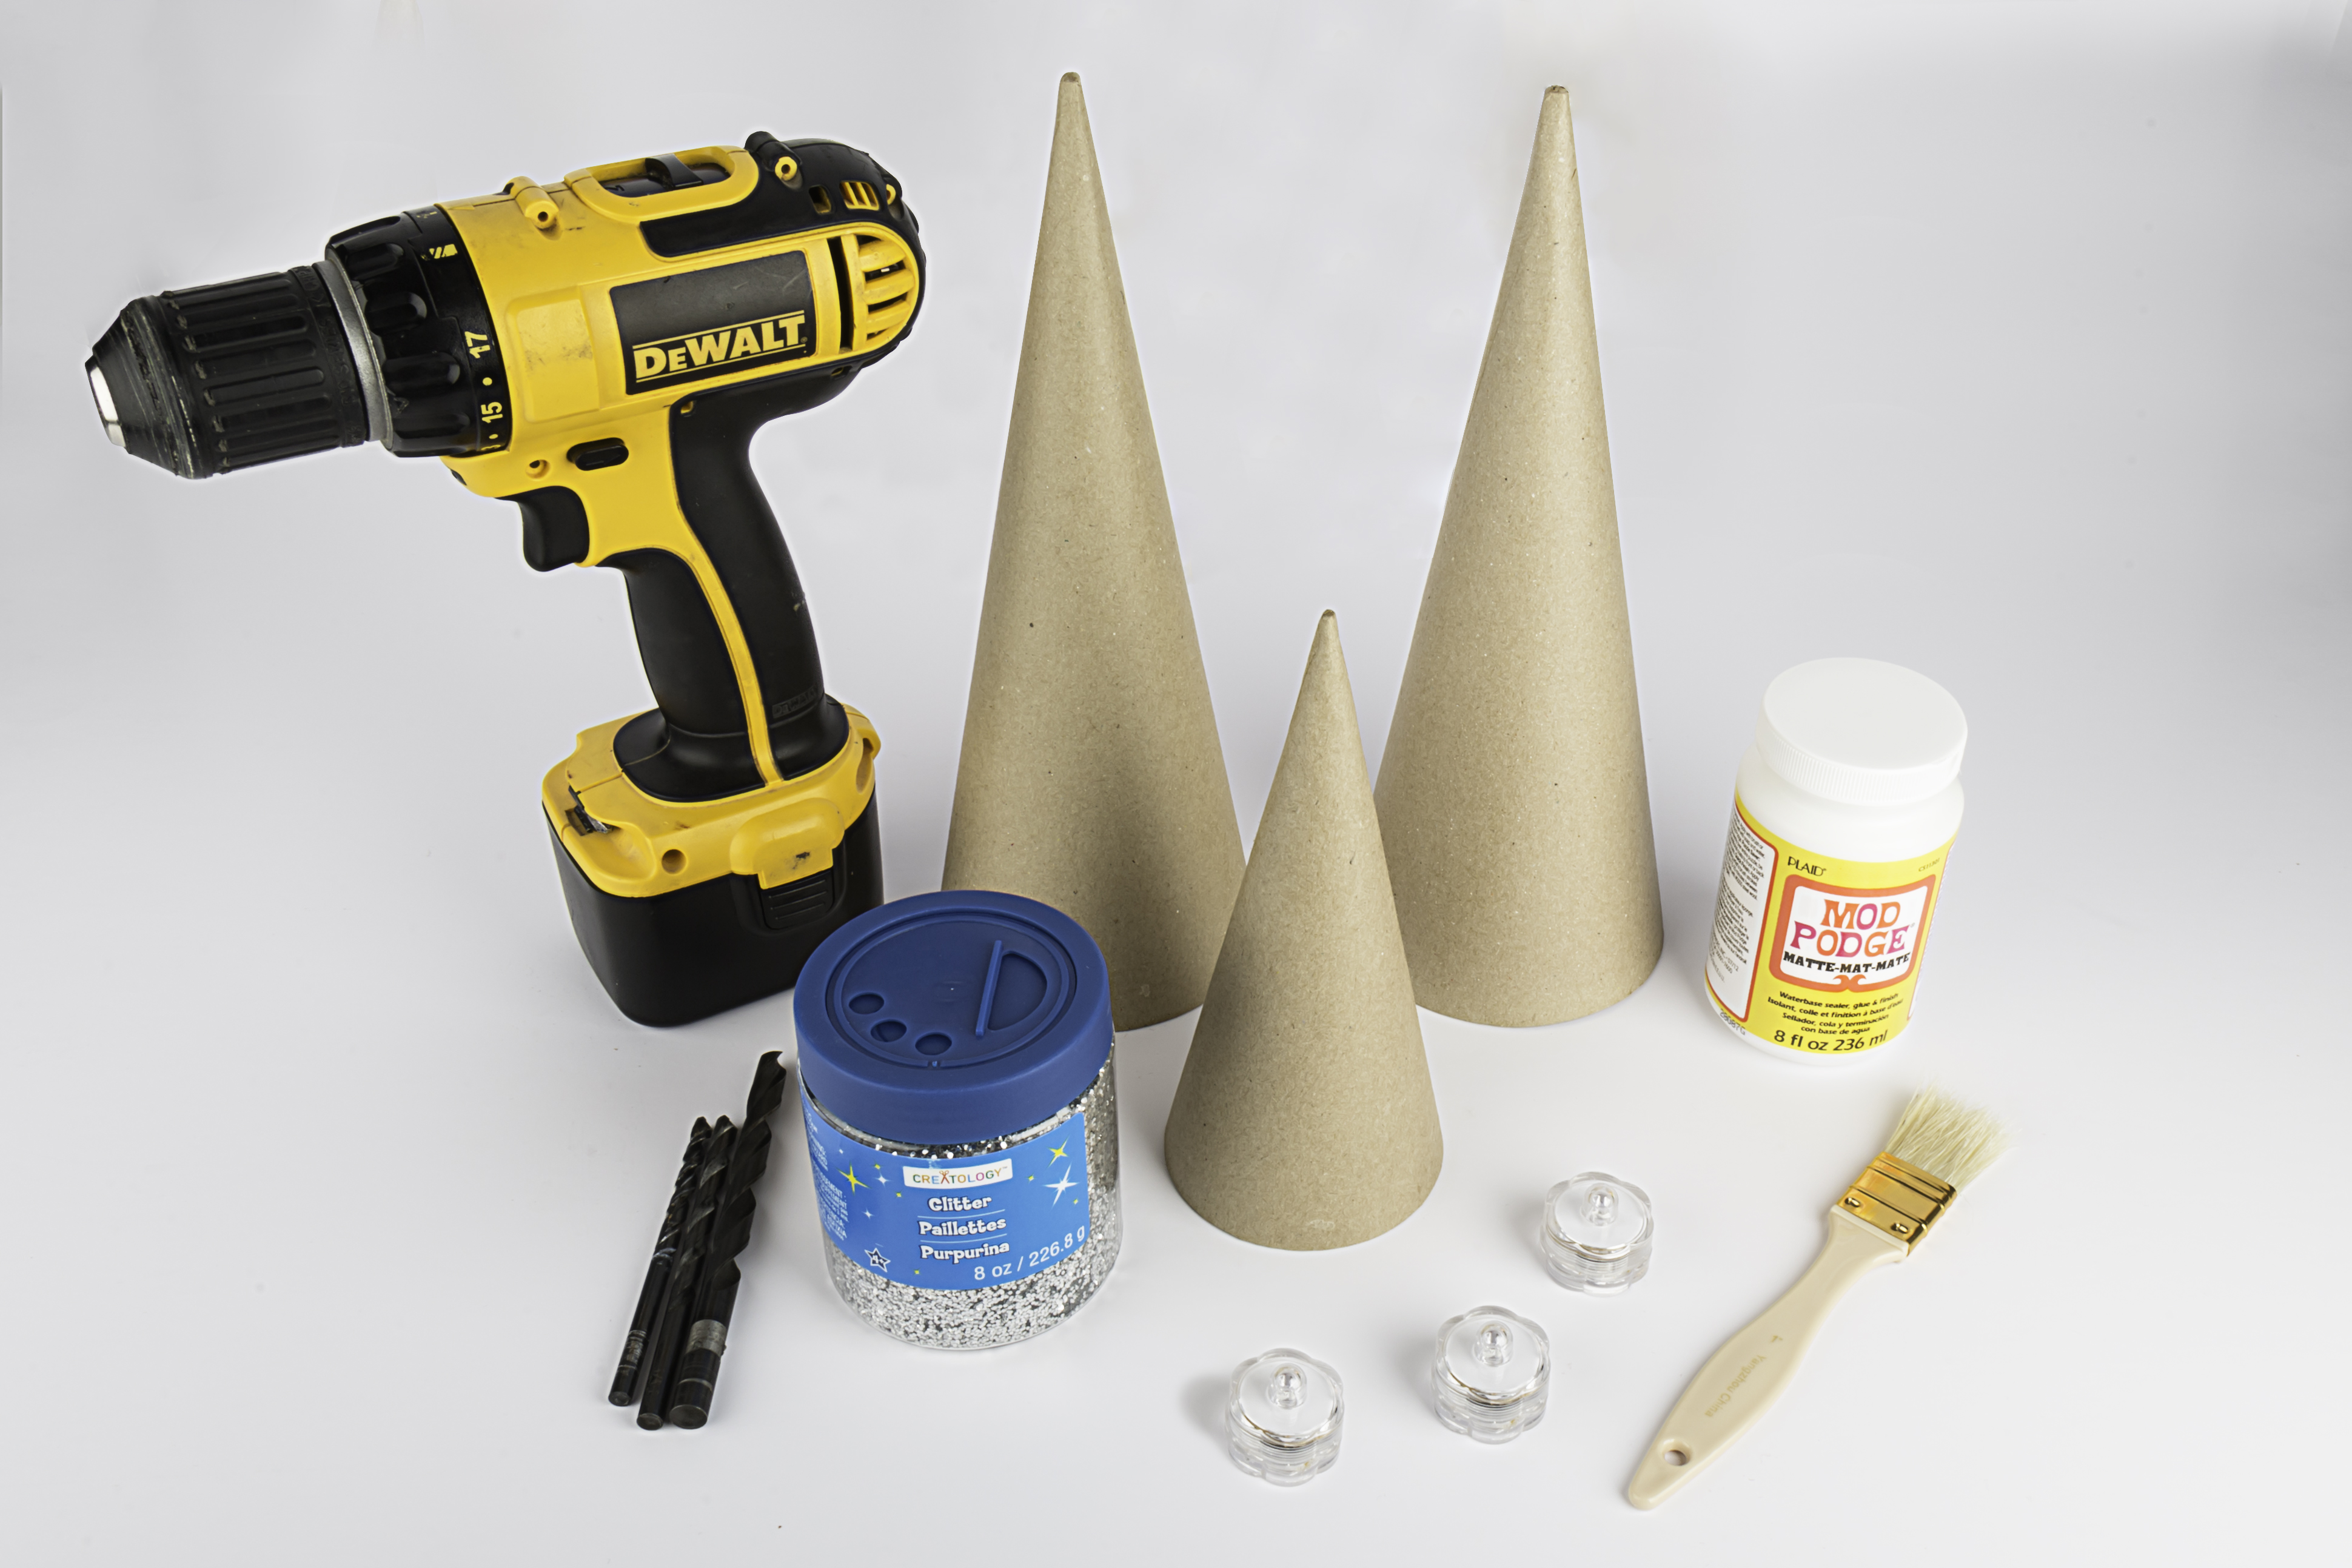 Christmas crafts materials - decorative LED christmas cones with LED tea lights